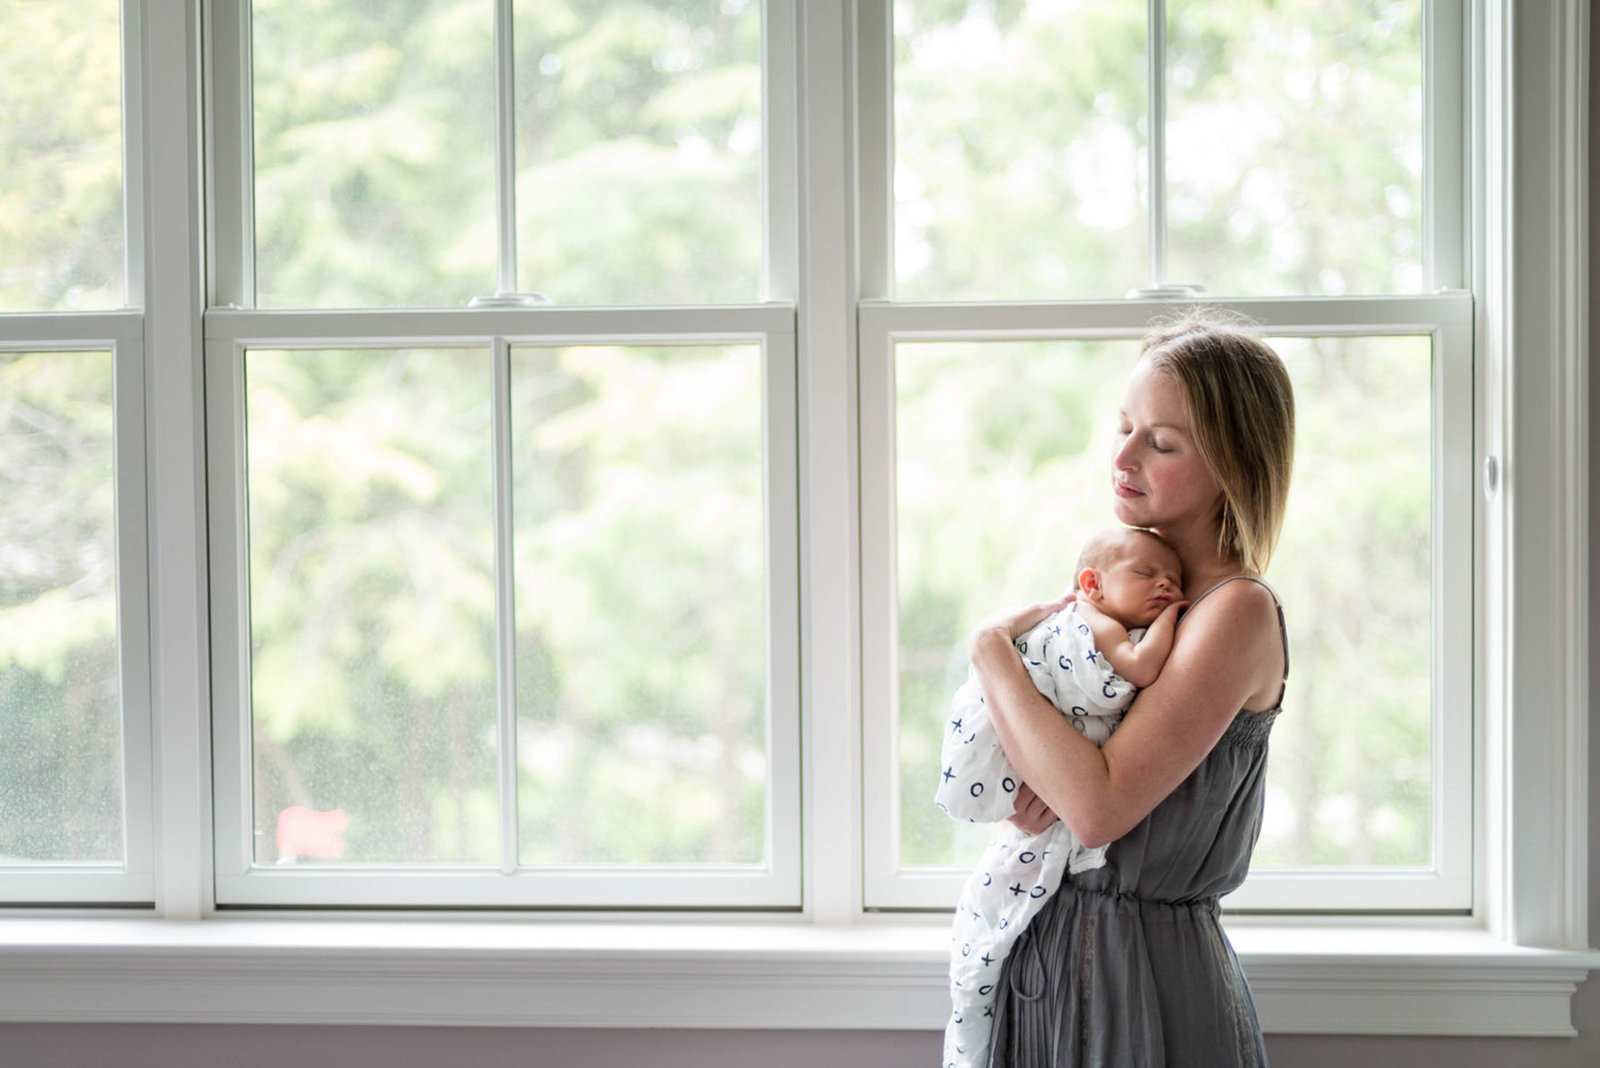 Boston-Newborn-Photographer-Lifestyle-Documentary-Home-Styled-Session-177